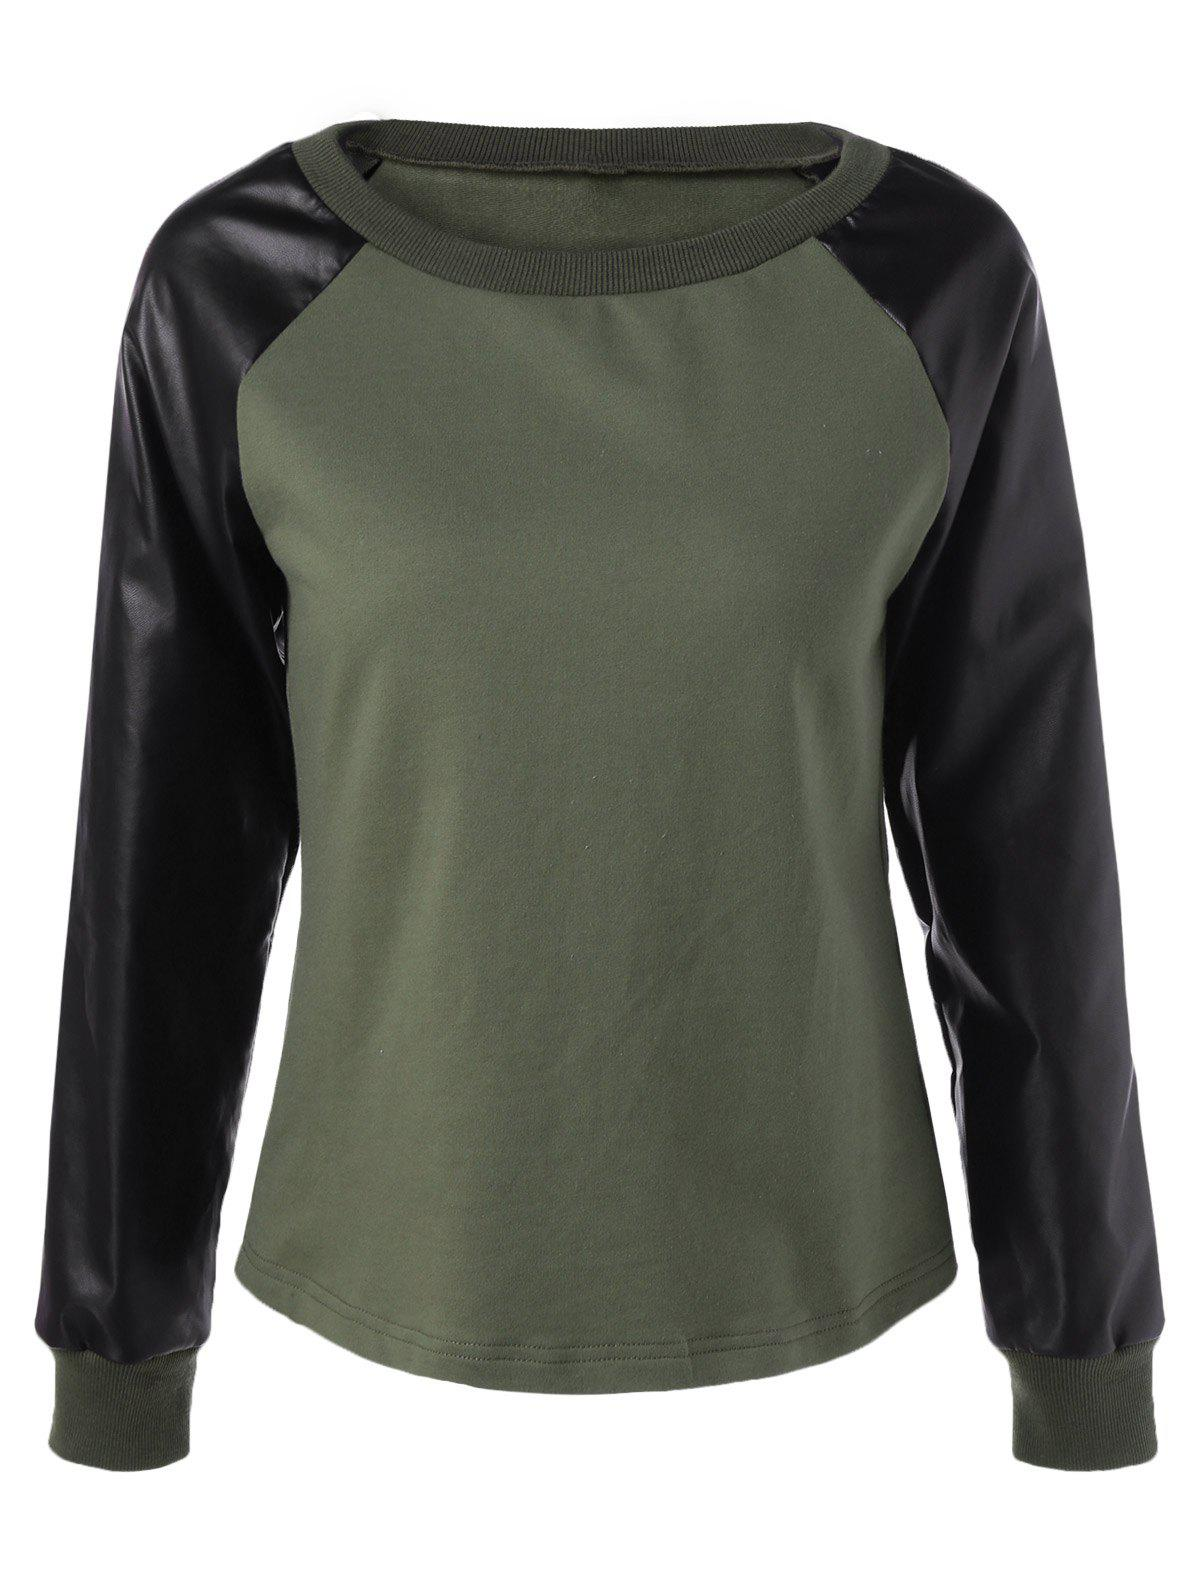 Chic Raglan Sleeve PU Patchwork Sweatshirt - ARMY GREEN XL